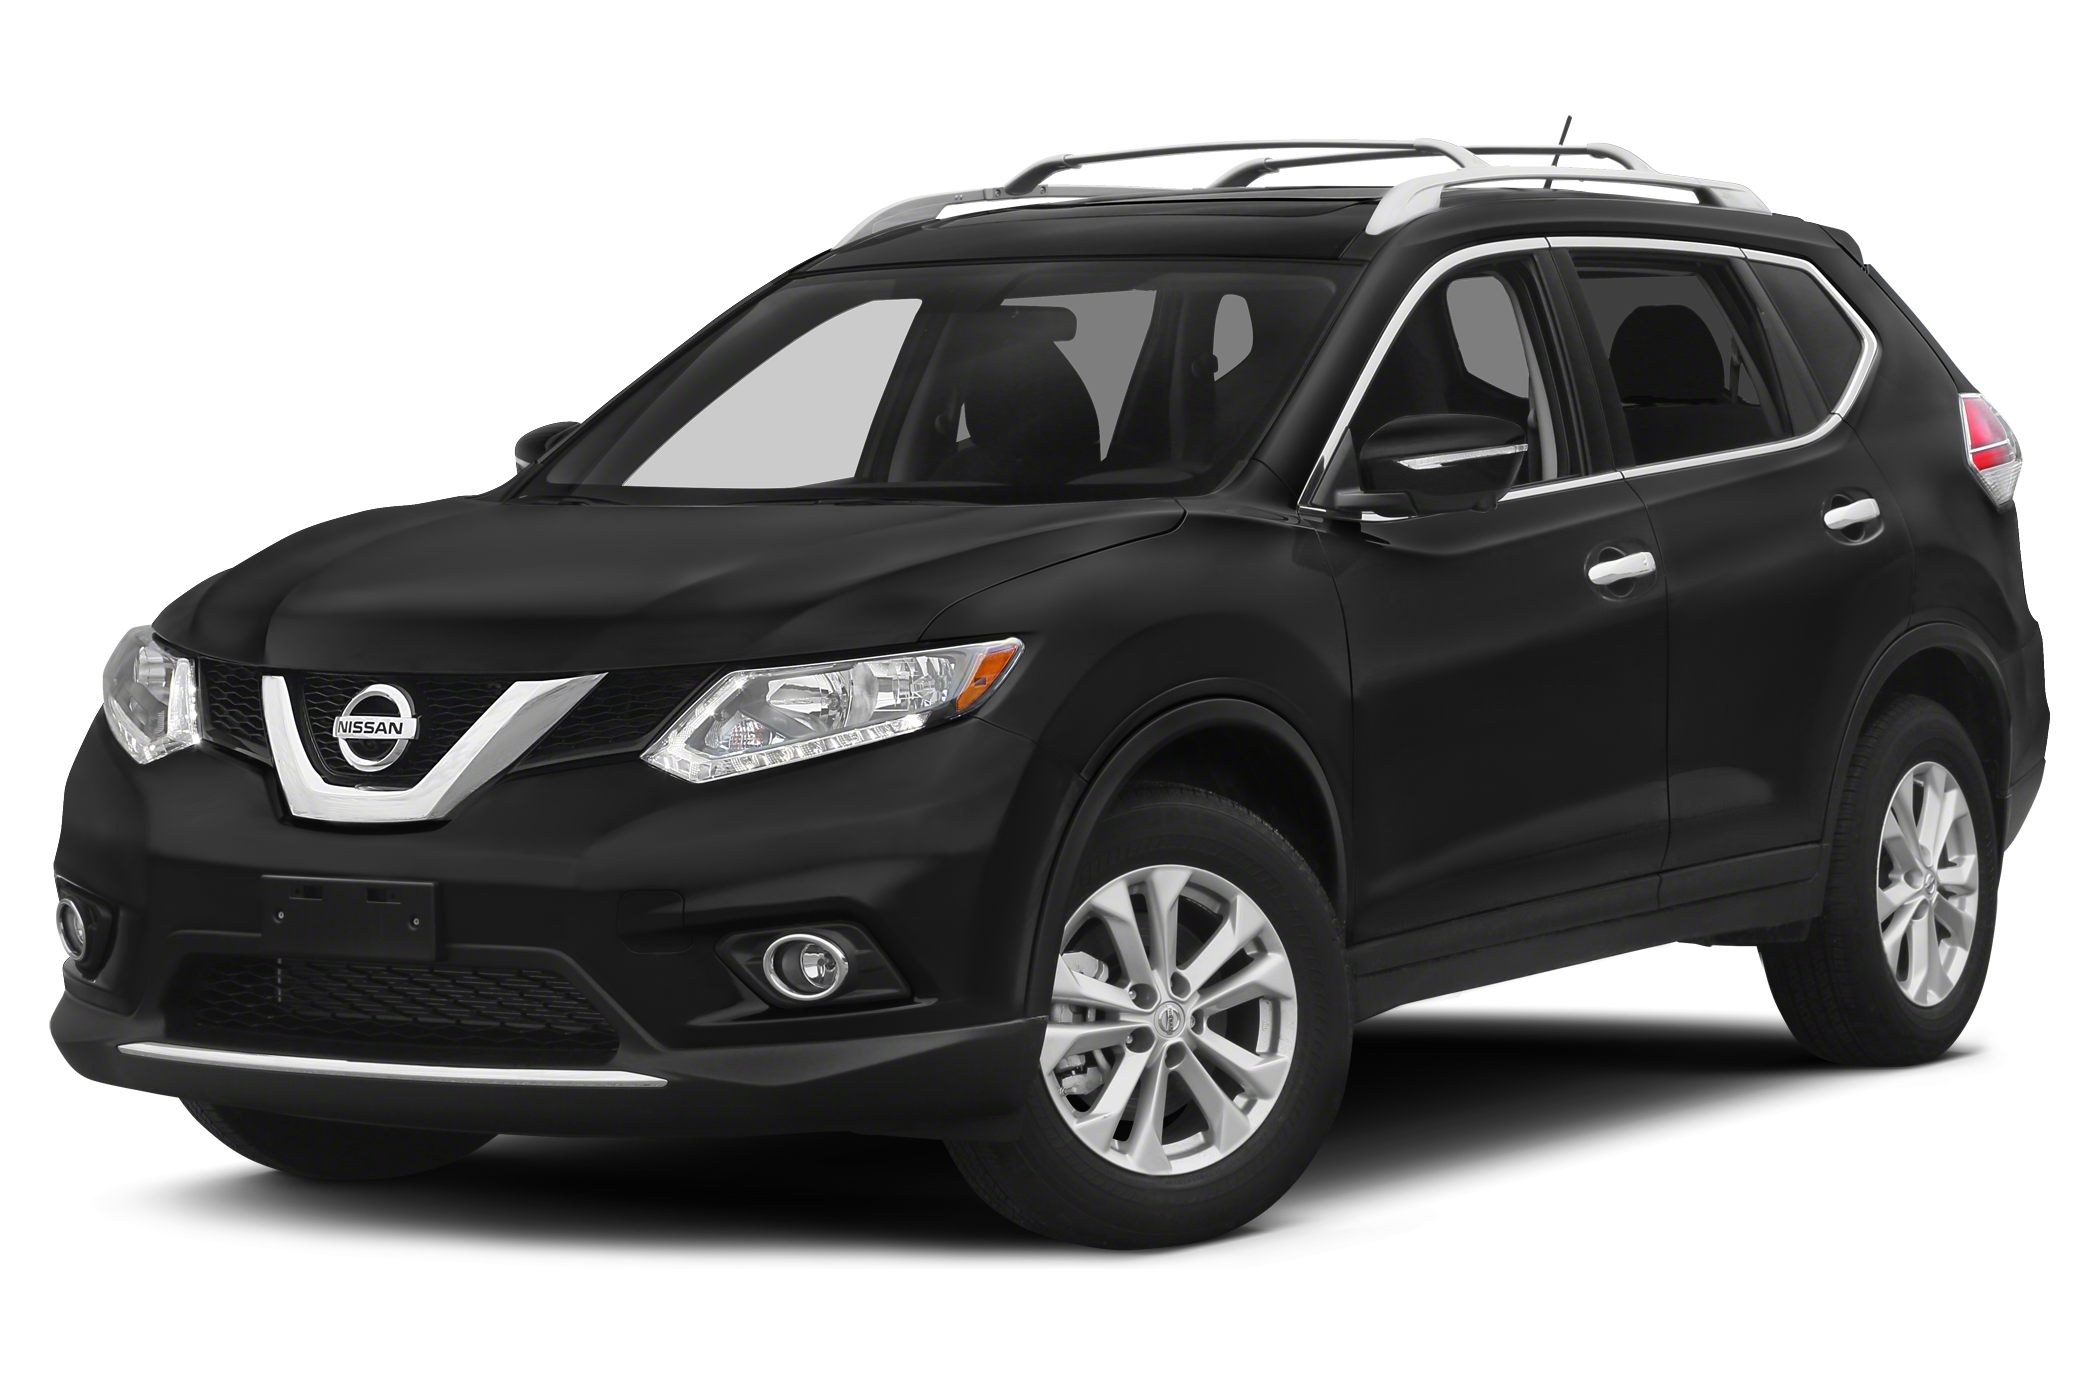 2015 Nissan Rogue SV SUV for sale in Beech Island for $21,977 with 10 miles